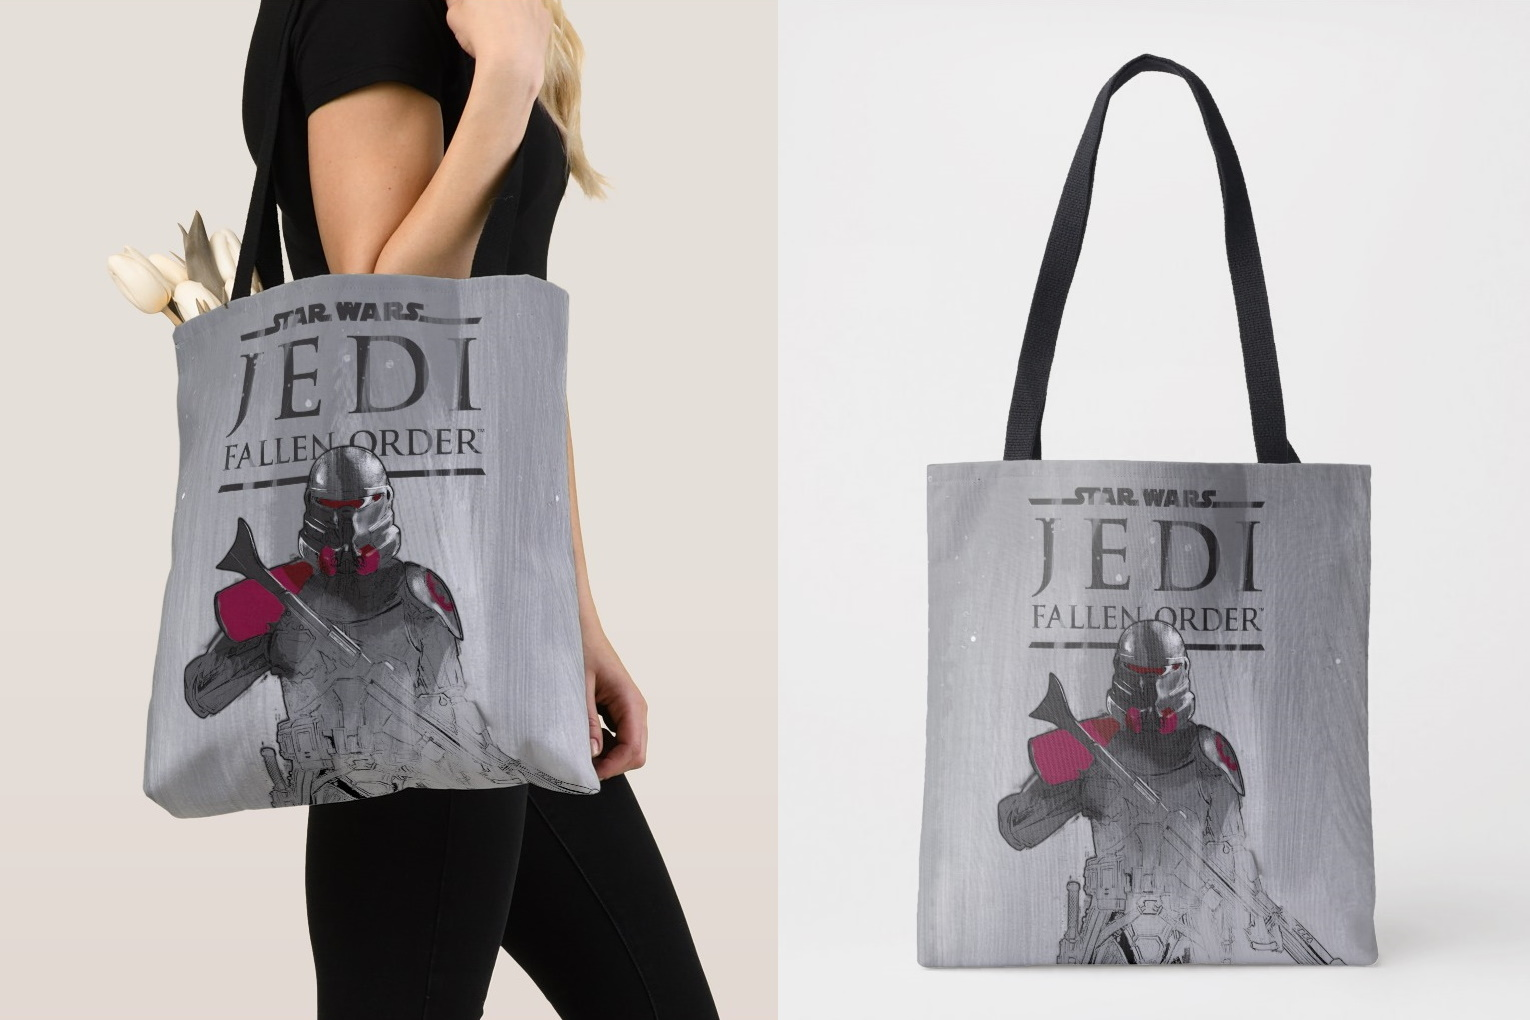 Jedi Fallen Order Tote Bag at Shop Disney